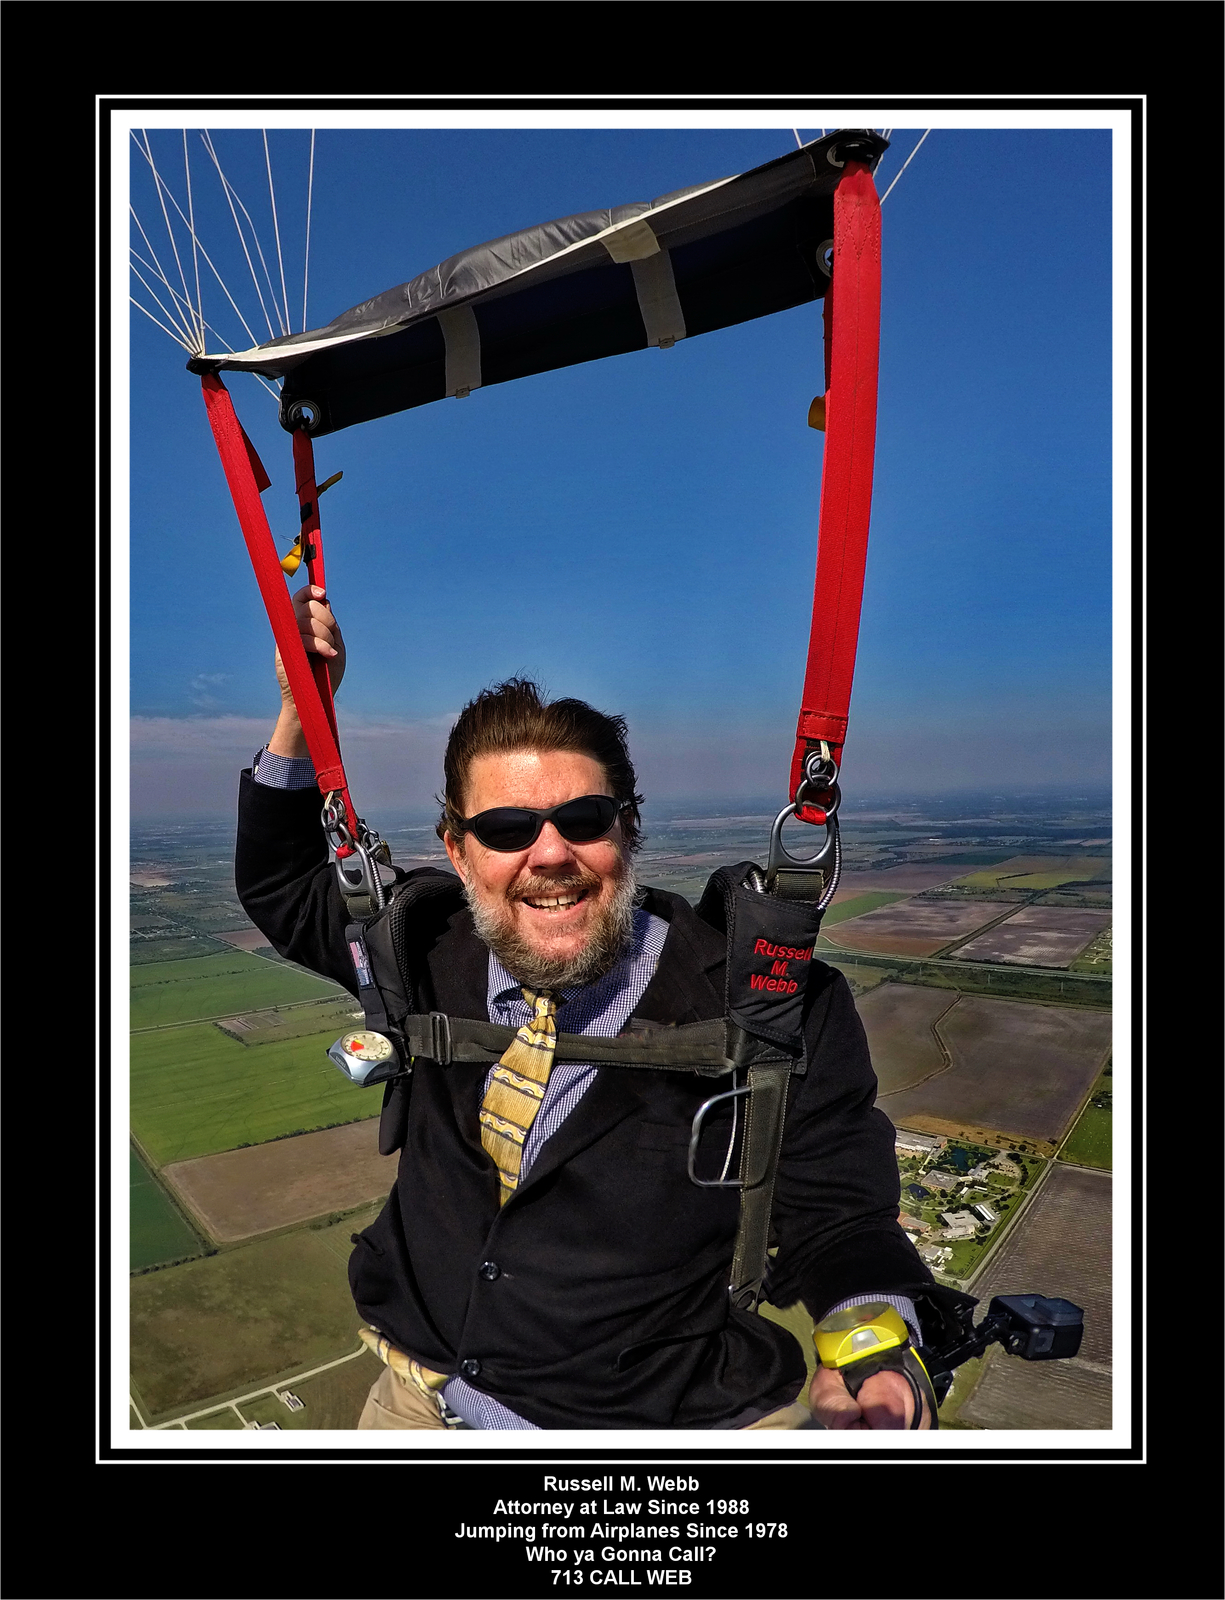 Skydive in Suit